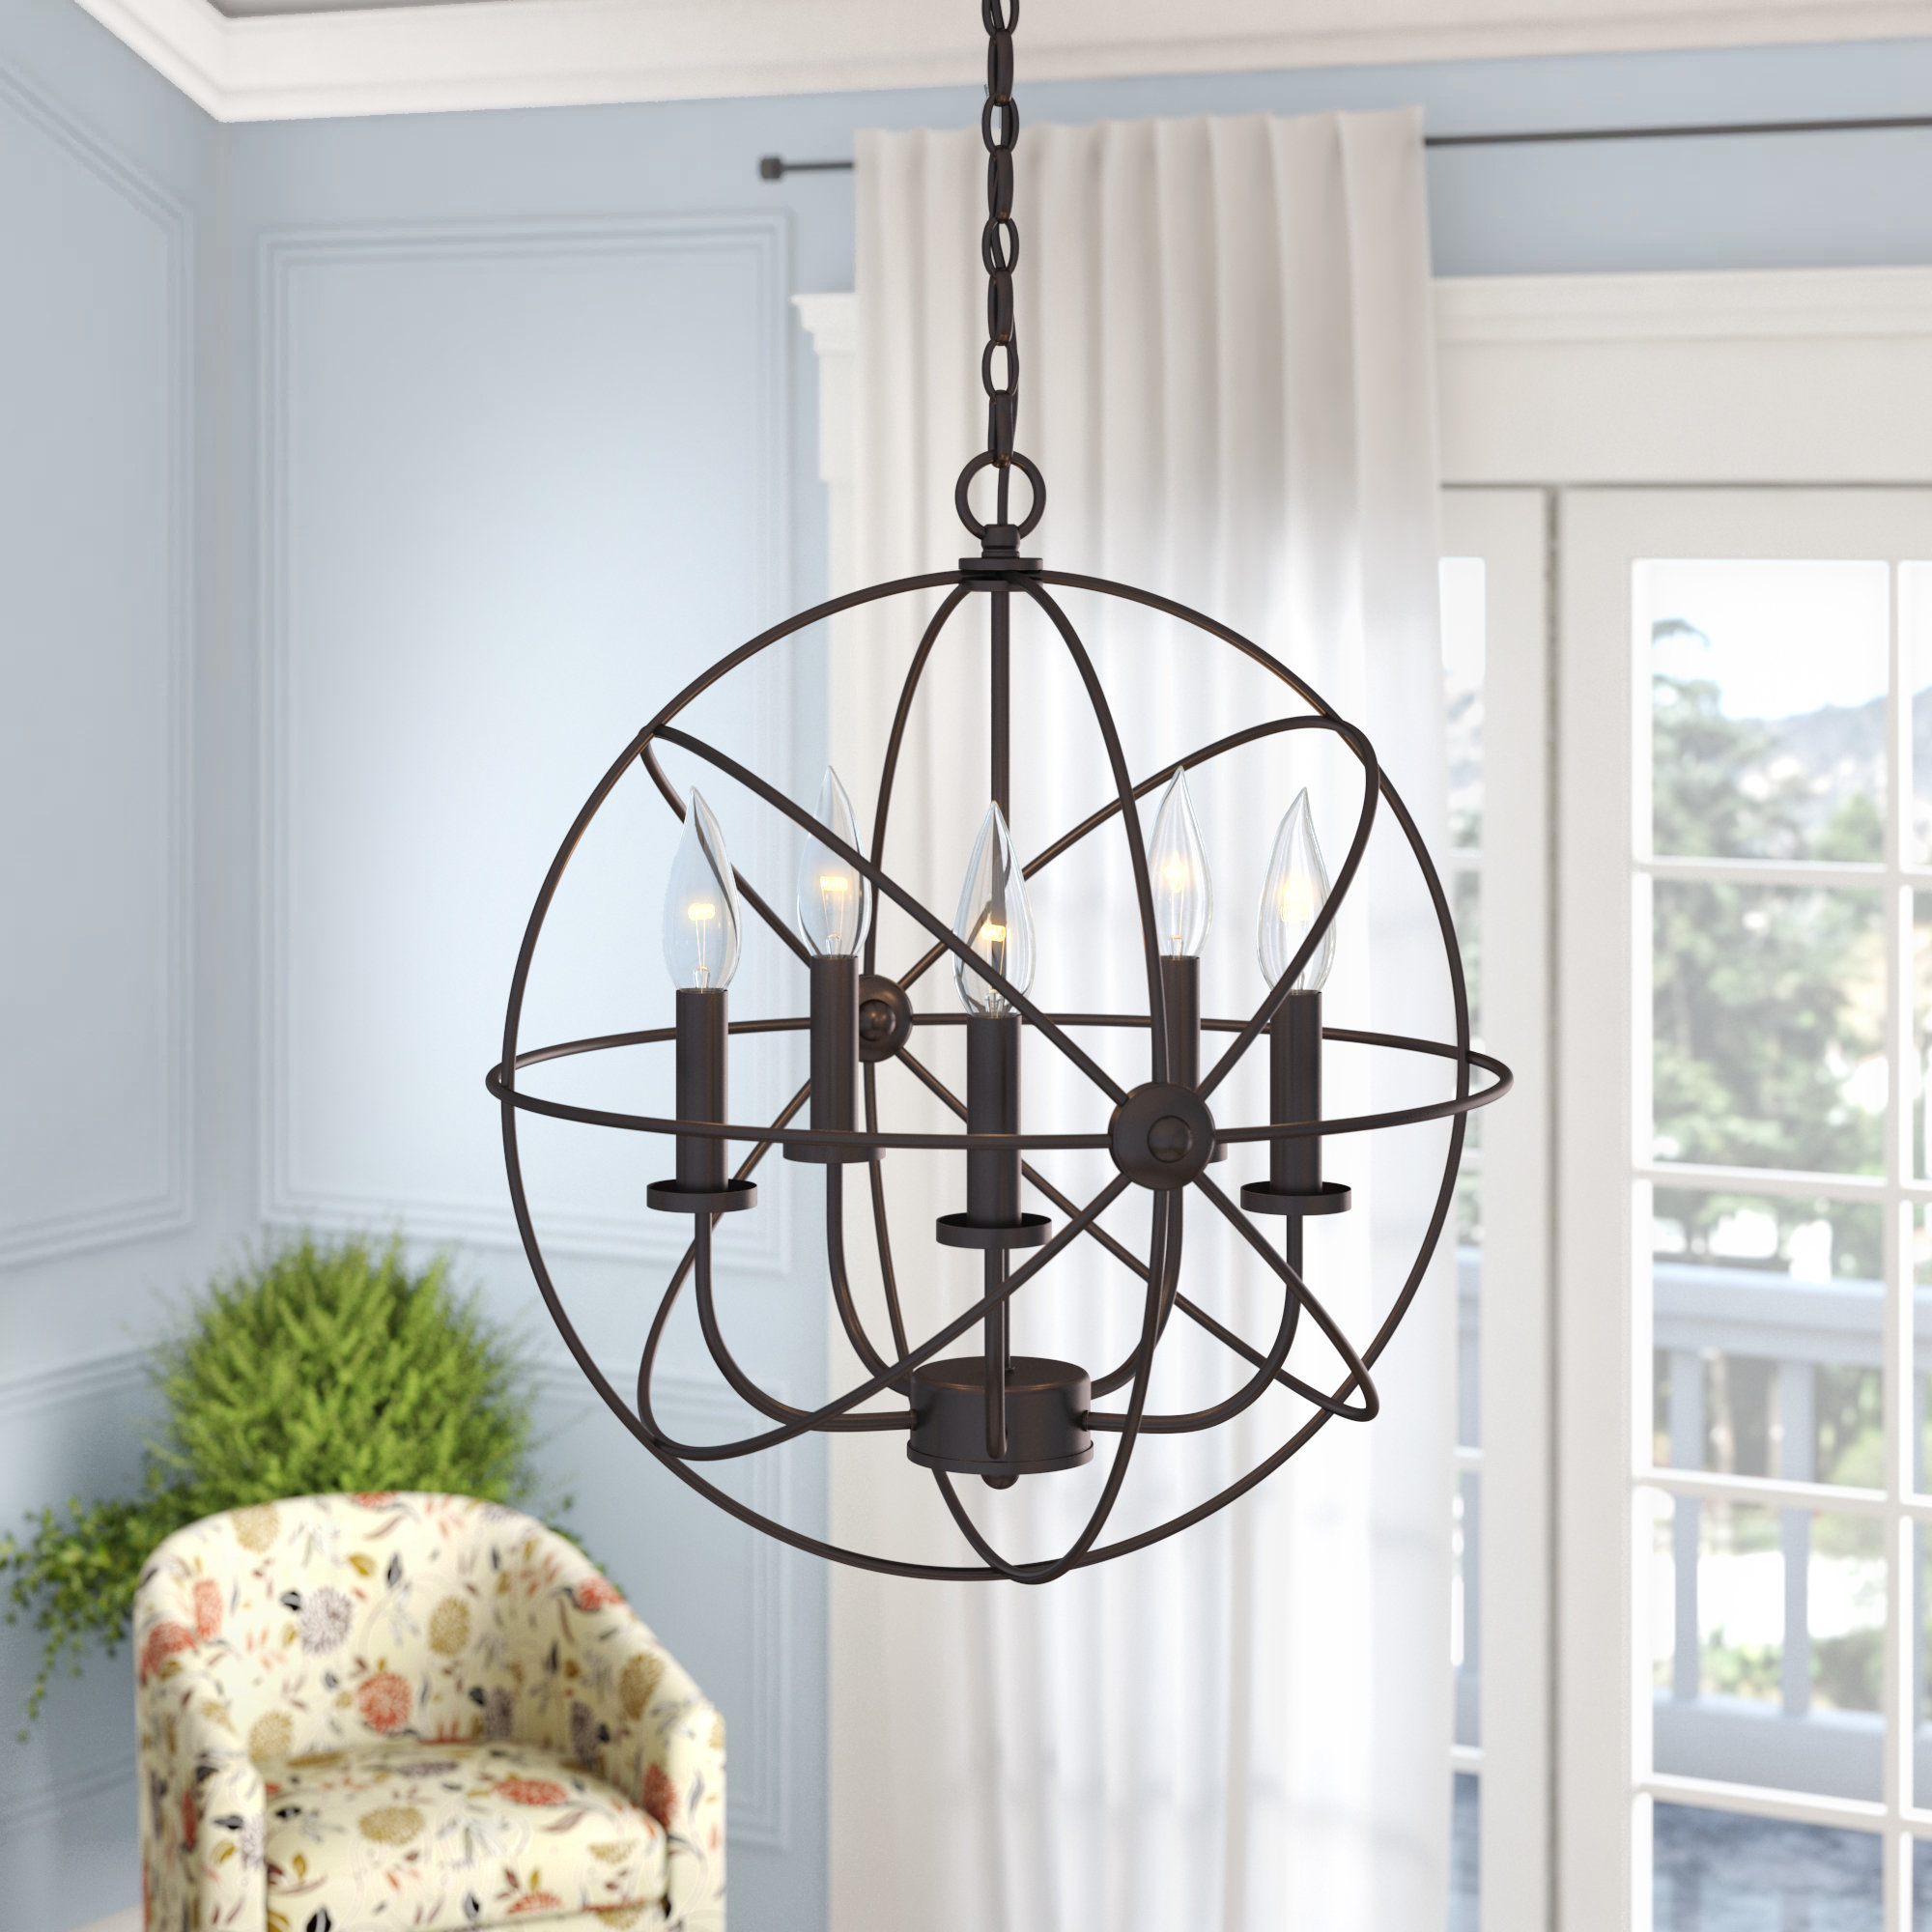 Newest Verlene Foyer 5 Light Globe Chandeliers With Regard To Caius 5 Light Globe Chandelier (View 13 of 20)